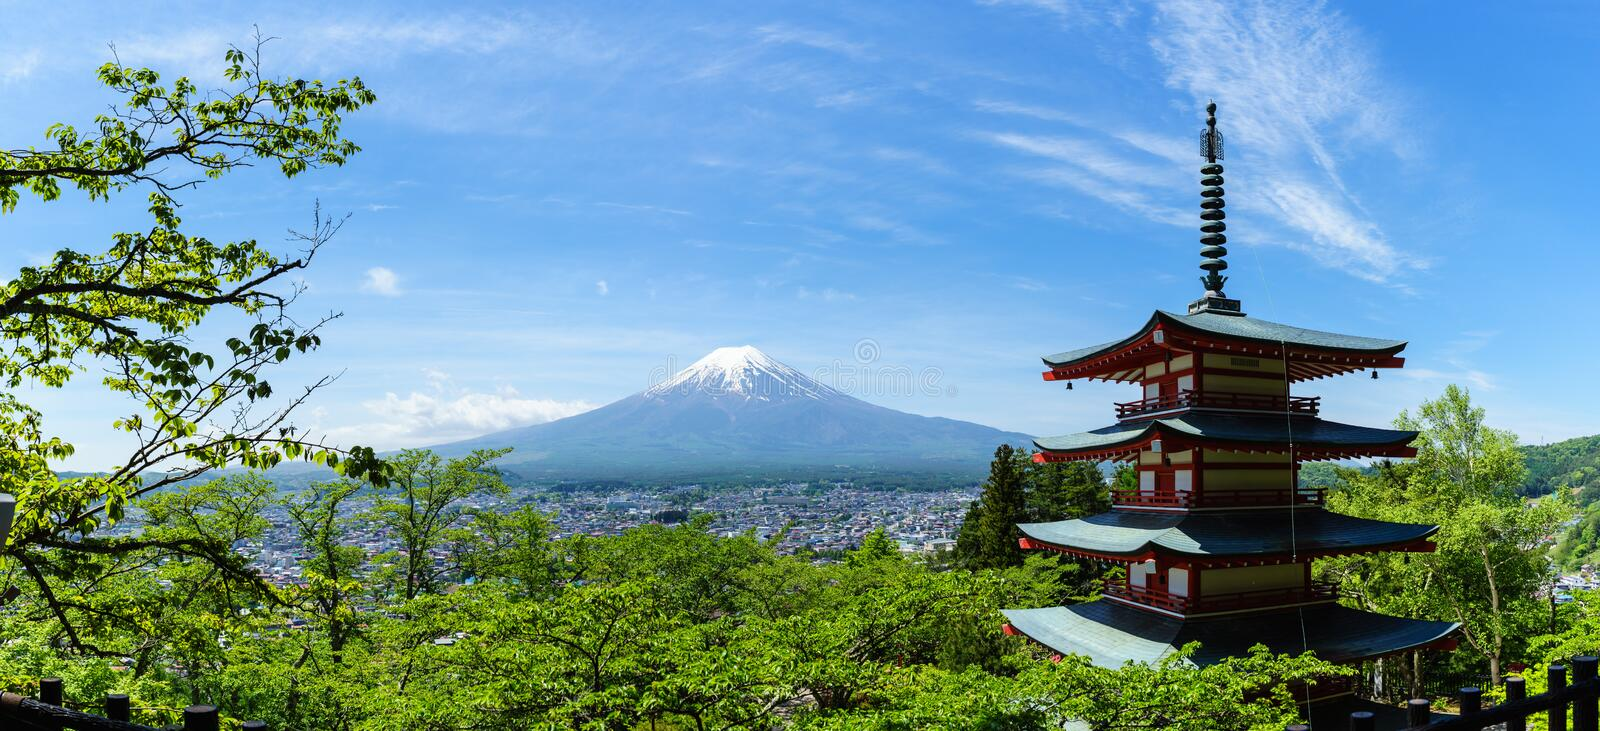 Mt. Fuji with blue sky royalty free stock photography